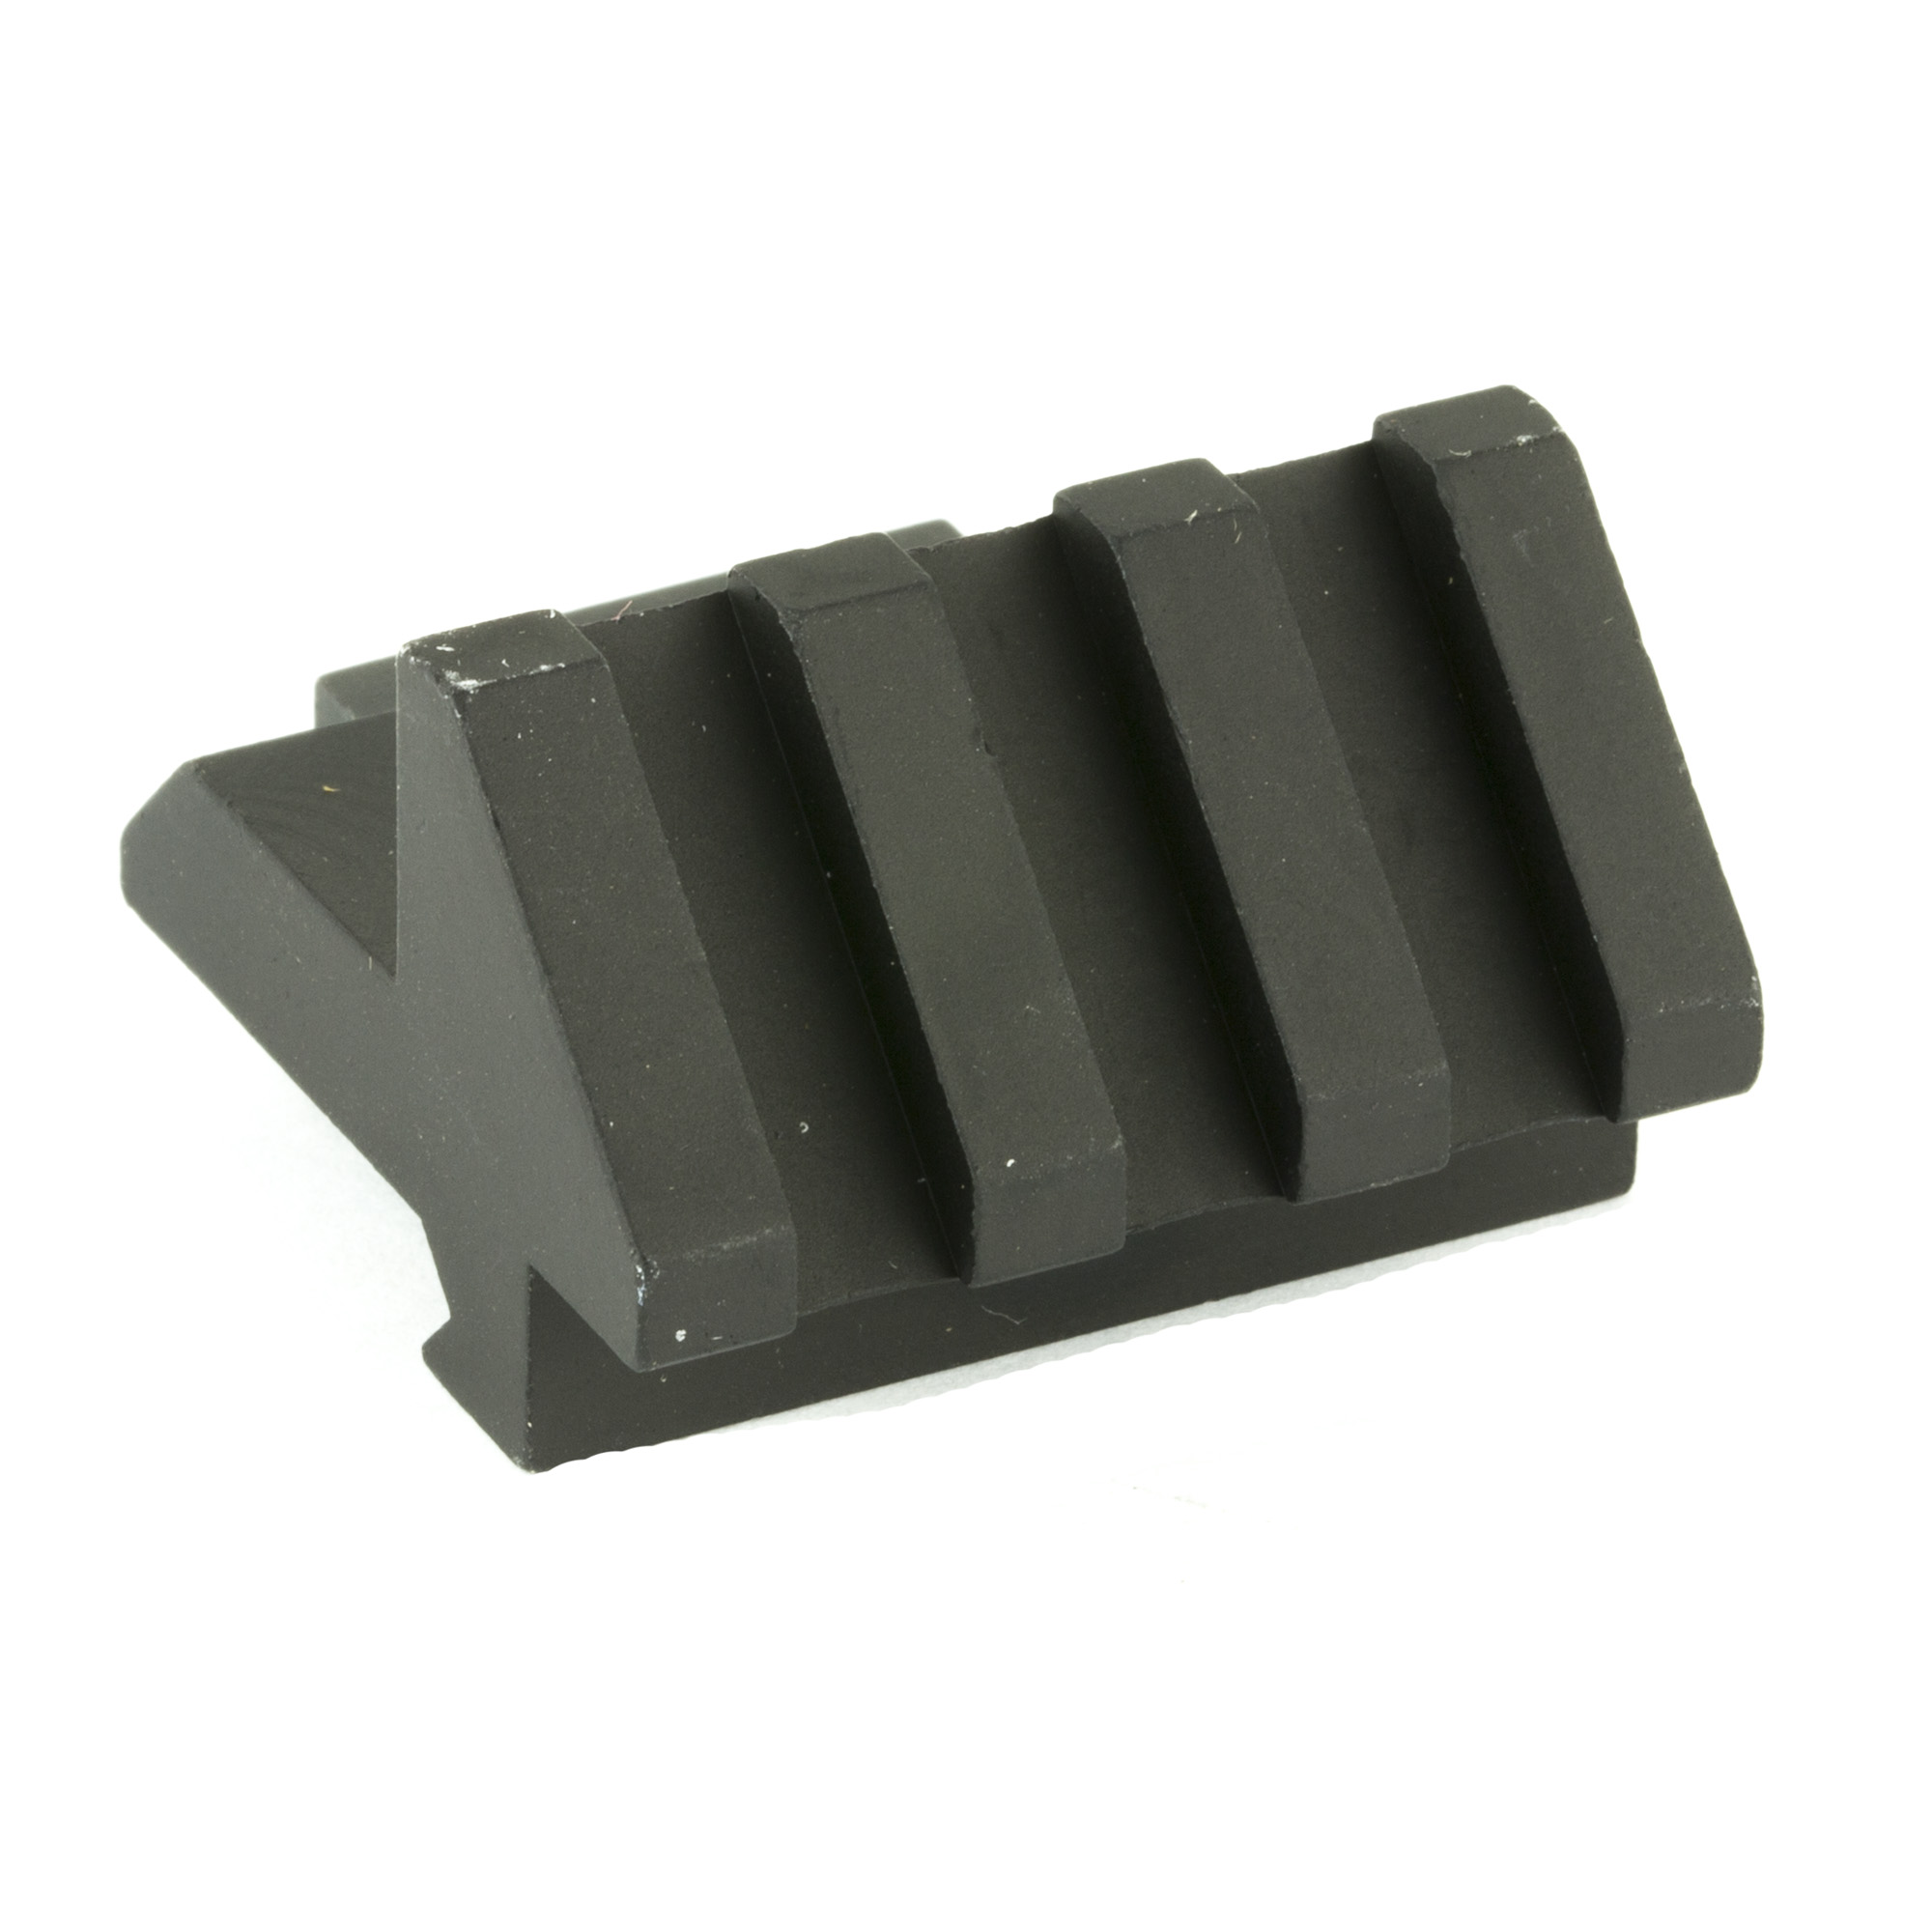 """These mounts are great when used with scopes"""" flashlights"""" lasers etc. Accessories are mounted at a 45 degree angle. When used with scopes the iron sights remain visible. Made from aircraft quality aluminum and Hardcoat Anodized matte black to Military Specifications or better."""